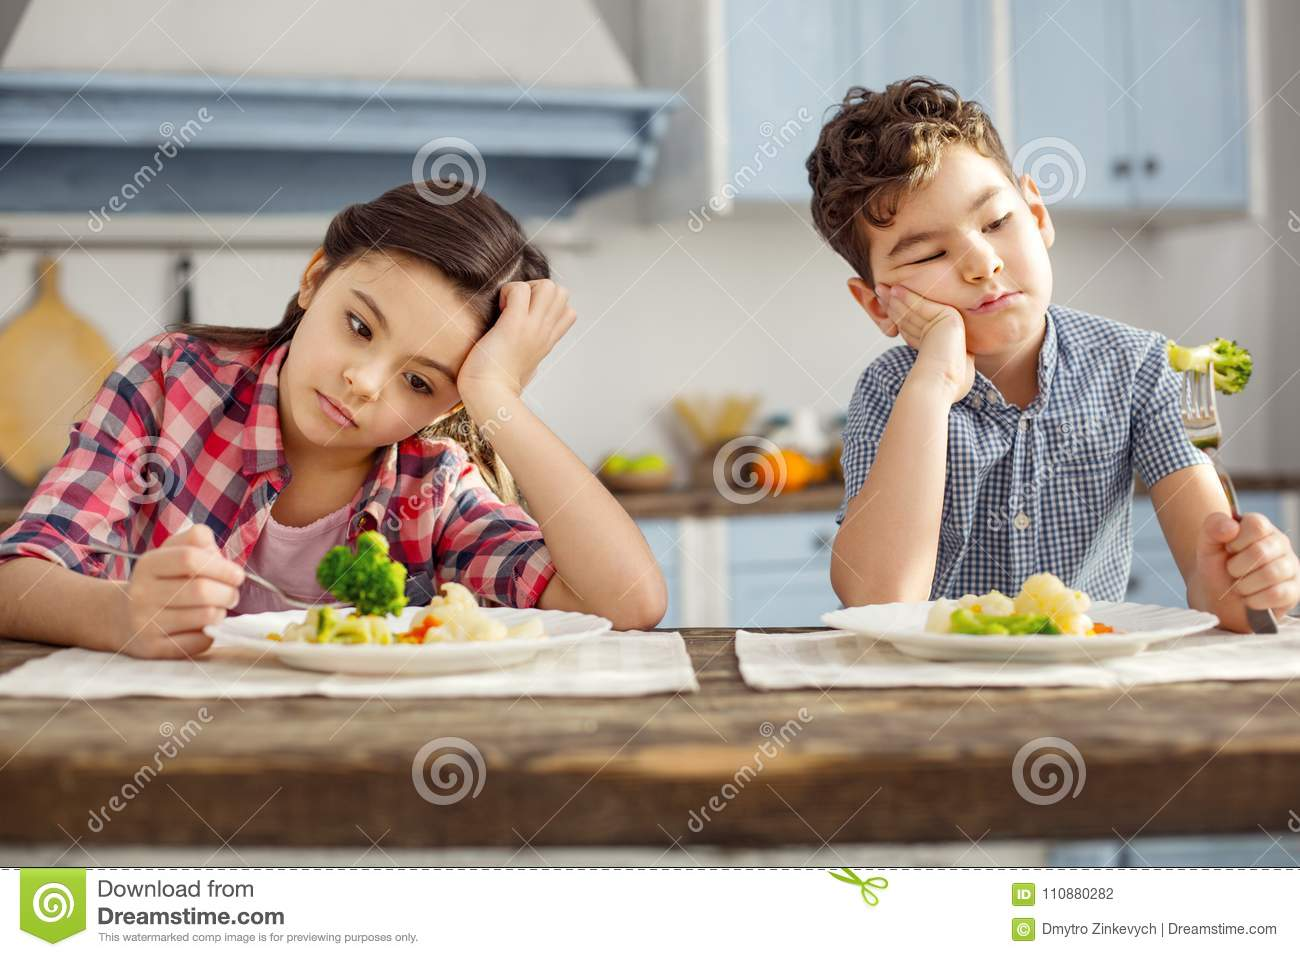 Unhappy siblings looking sadly at the vegetables